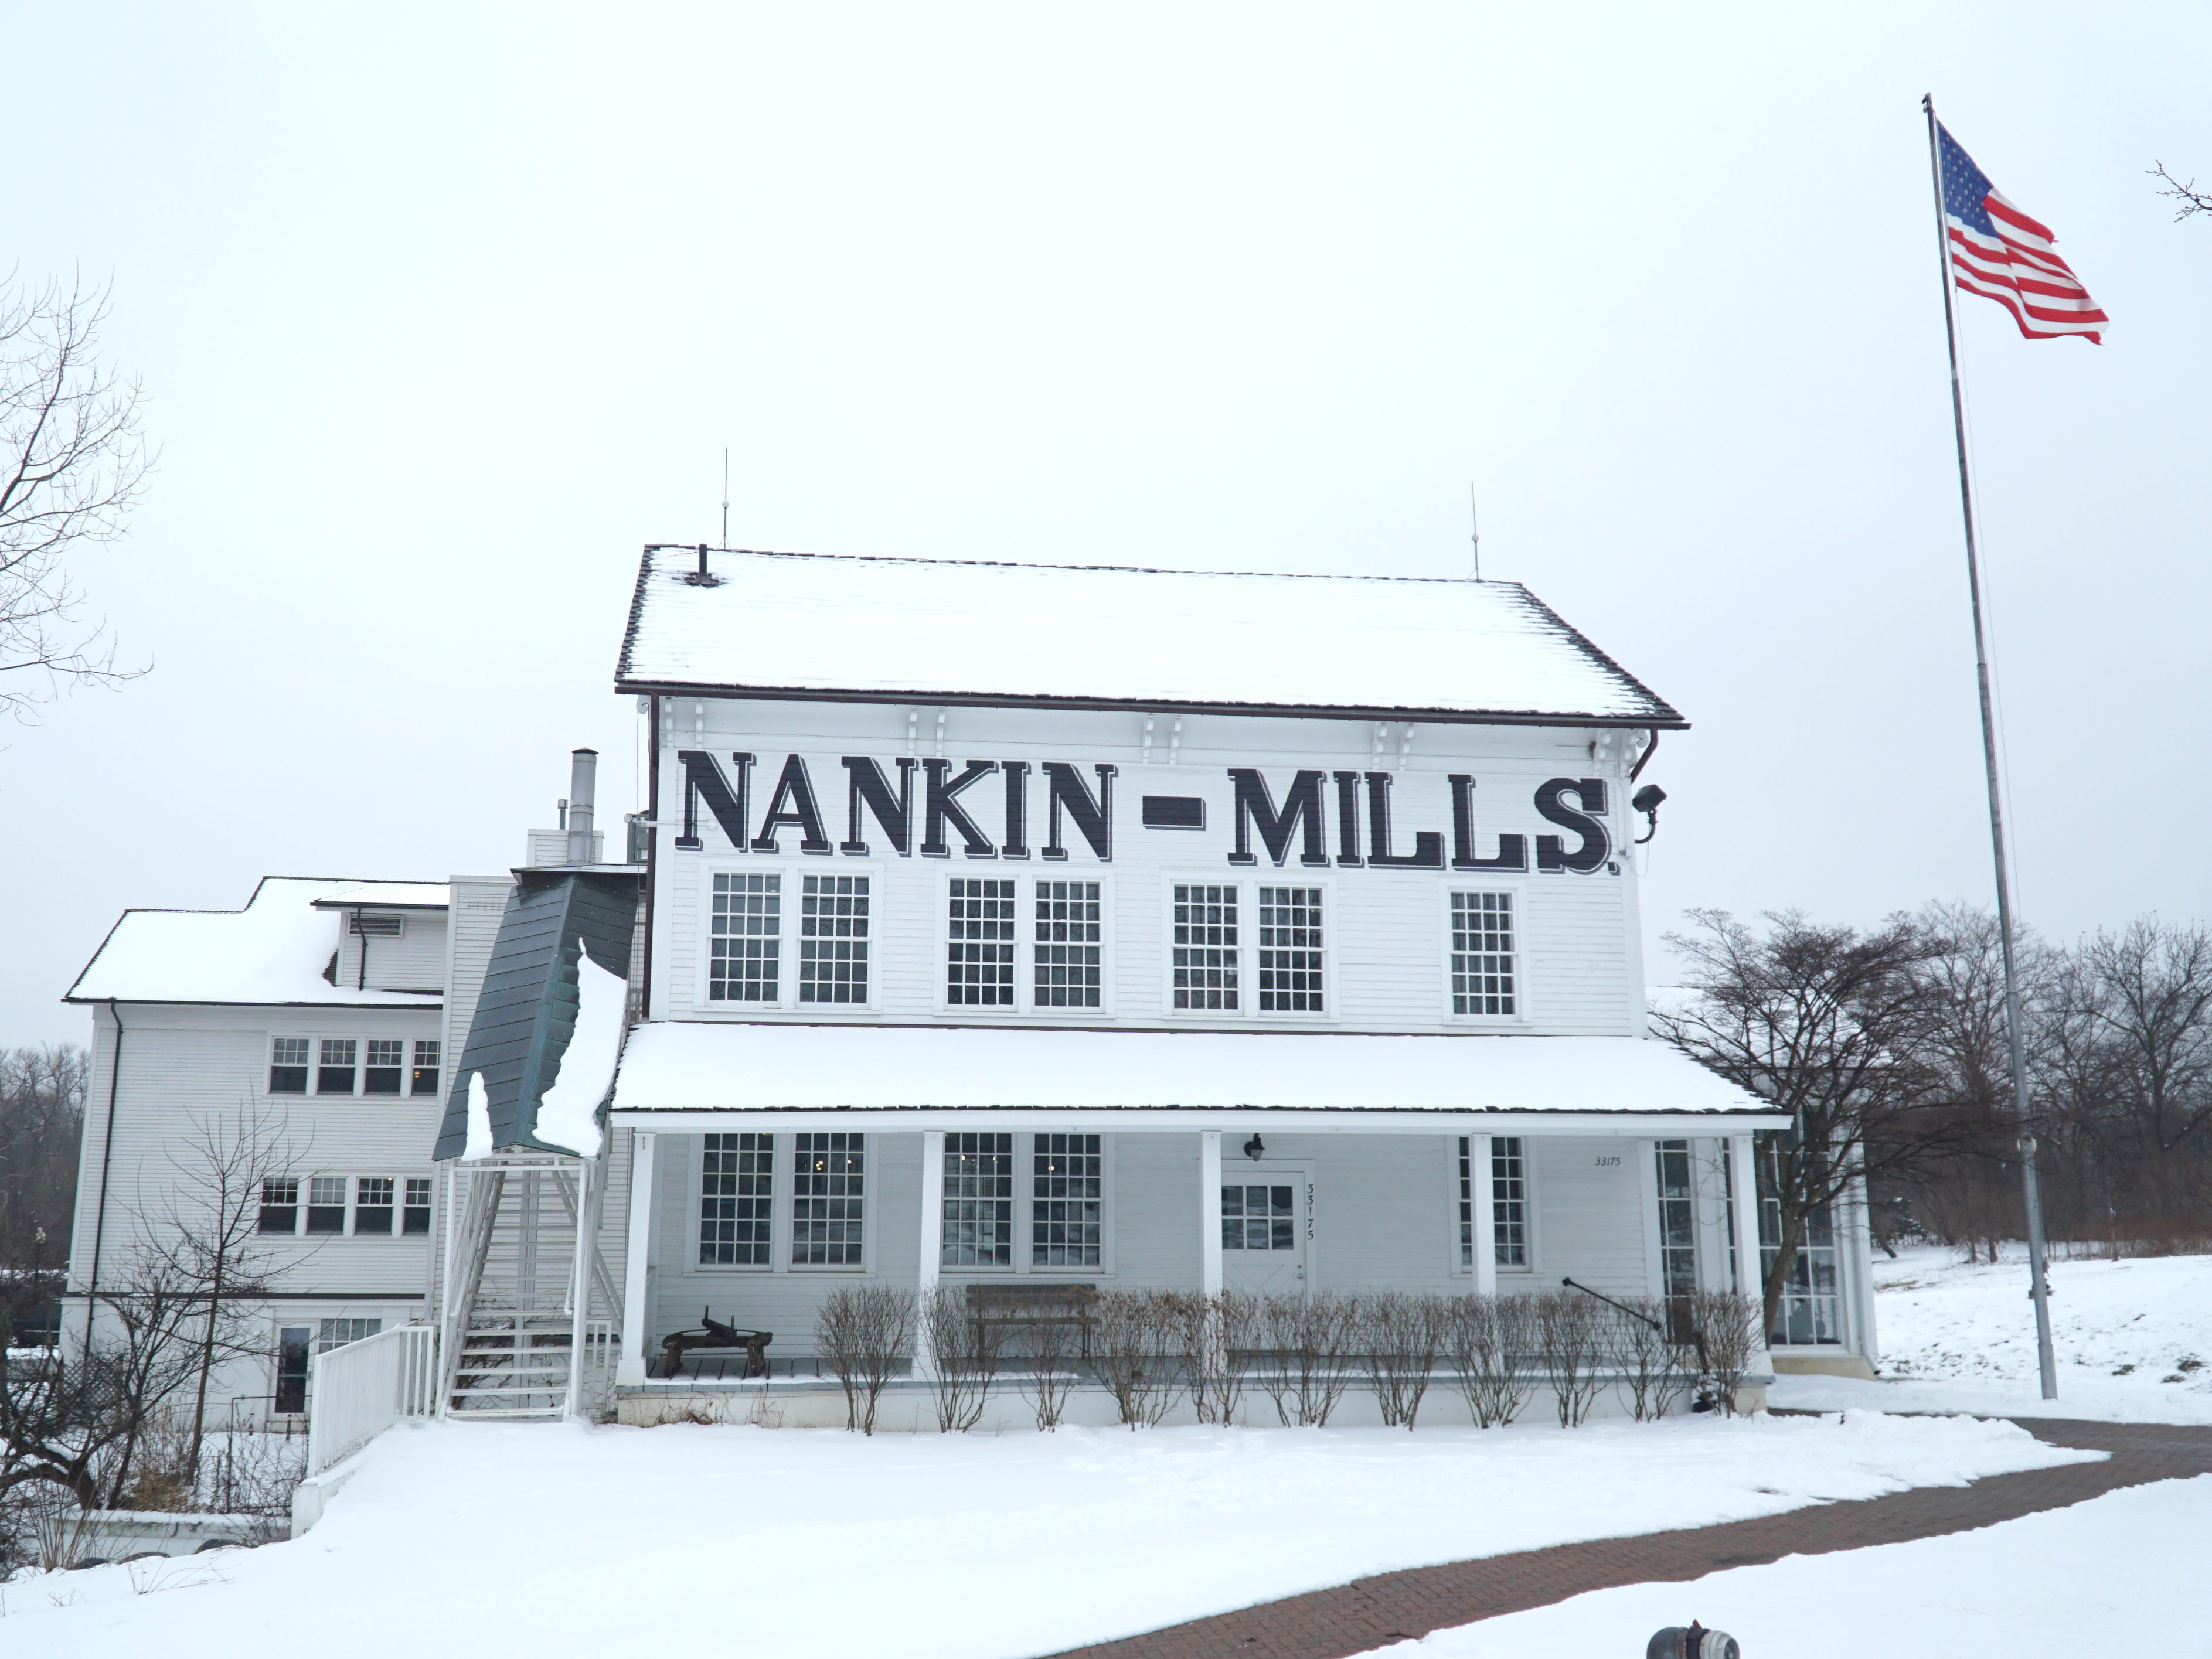 Nankin Mills is located at 33175 Ann Arbor Trail in Livonia.